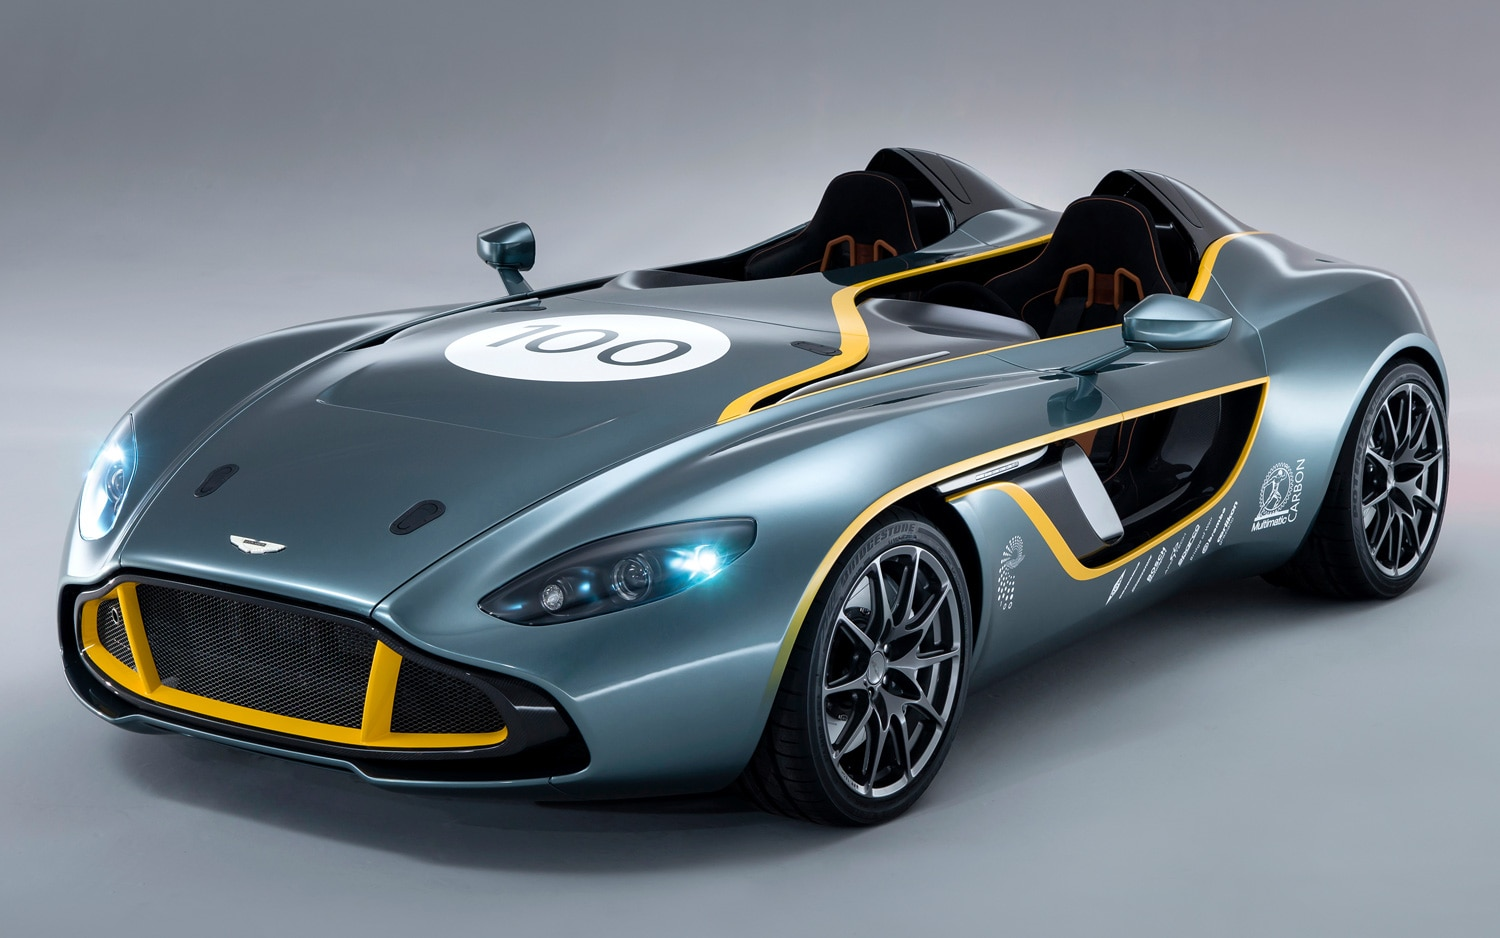 2013 Aston Martin CC100 Speedster Concept Front Three Quarters View1